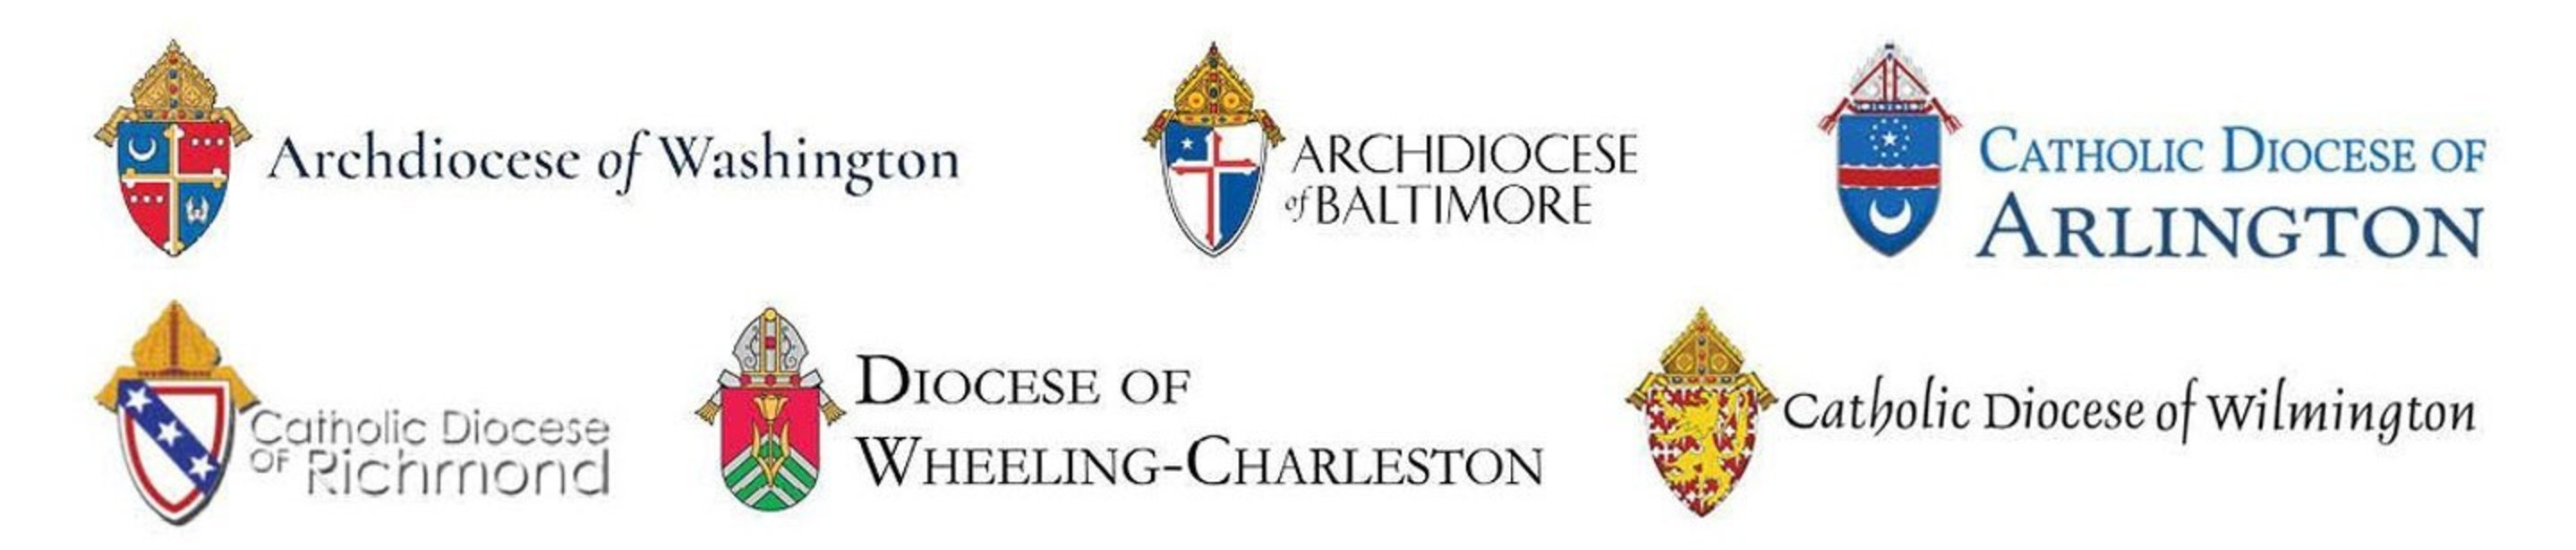 Province Of Baltimore Adw